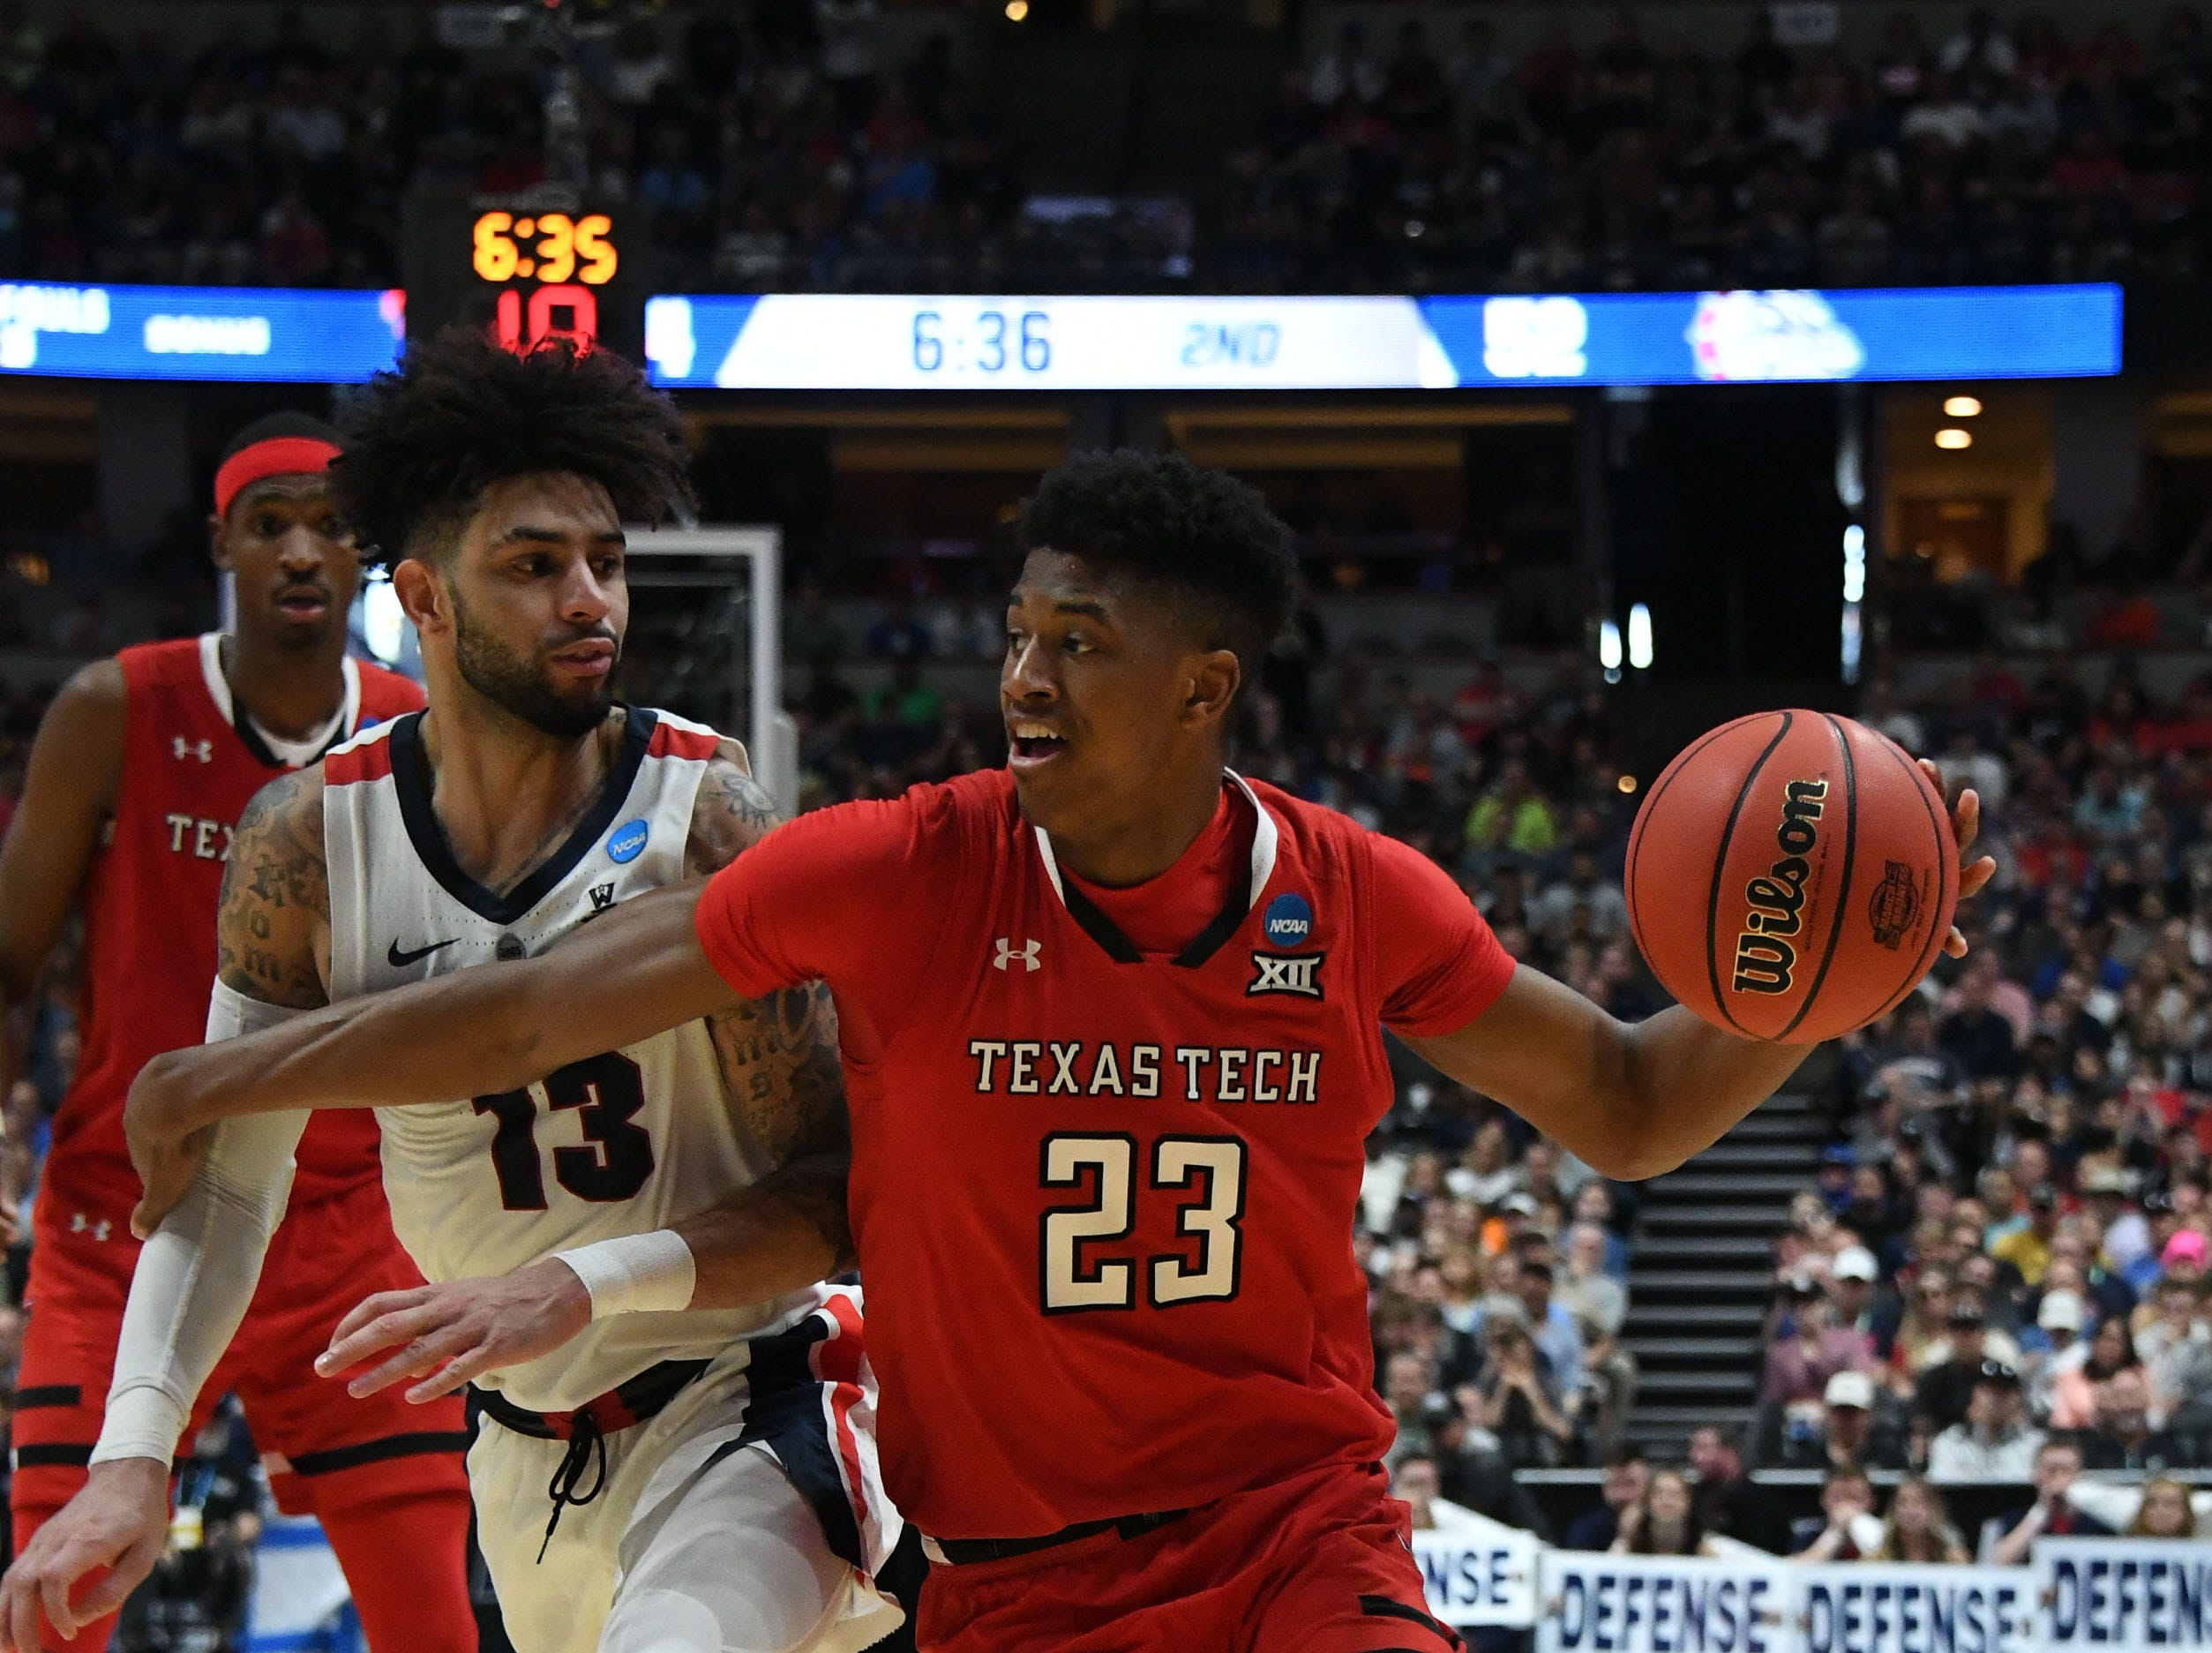 March 30, 2019; Anaheim, CA, USA; Texas Tech Red Raiders guard Jarrett Culver (23) moves the ball against Gonzaga Bulldogs guard Josh Perkins (13) during the second half in the championship game of the west regional of the 2019 NCAA Tournament at Honda Center. Mandatory Credit: Richard Mackson-USA TODAY Sports